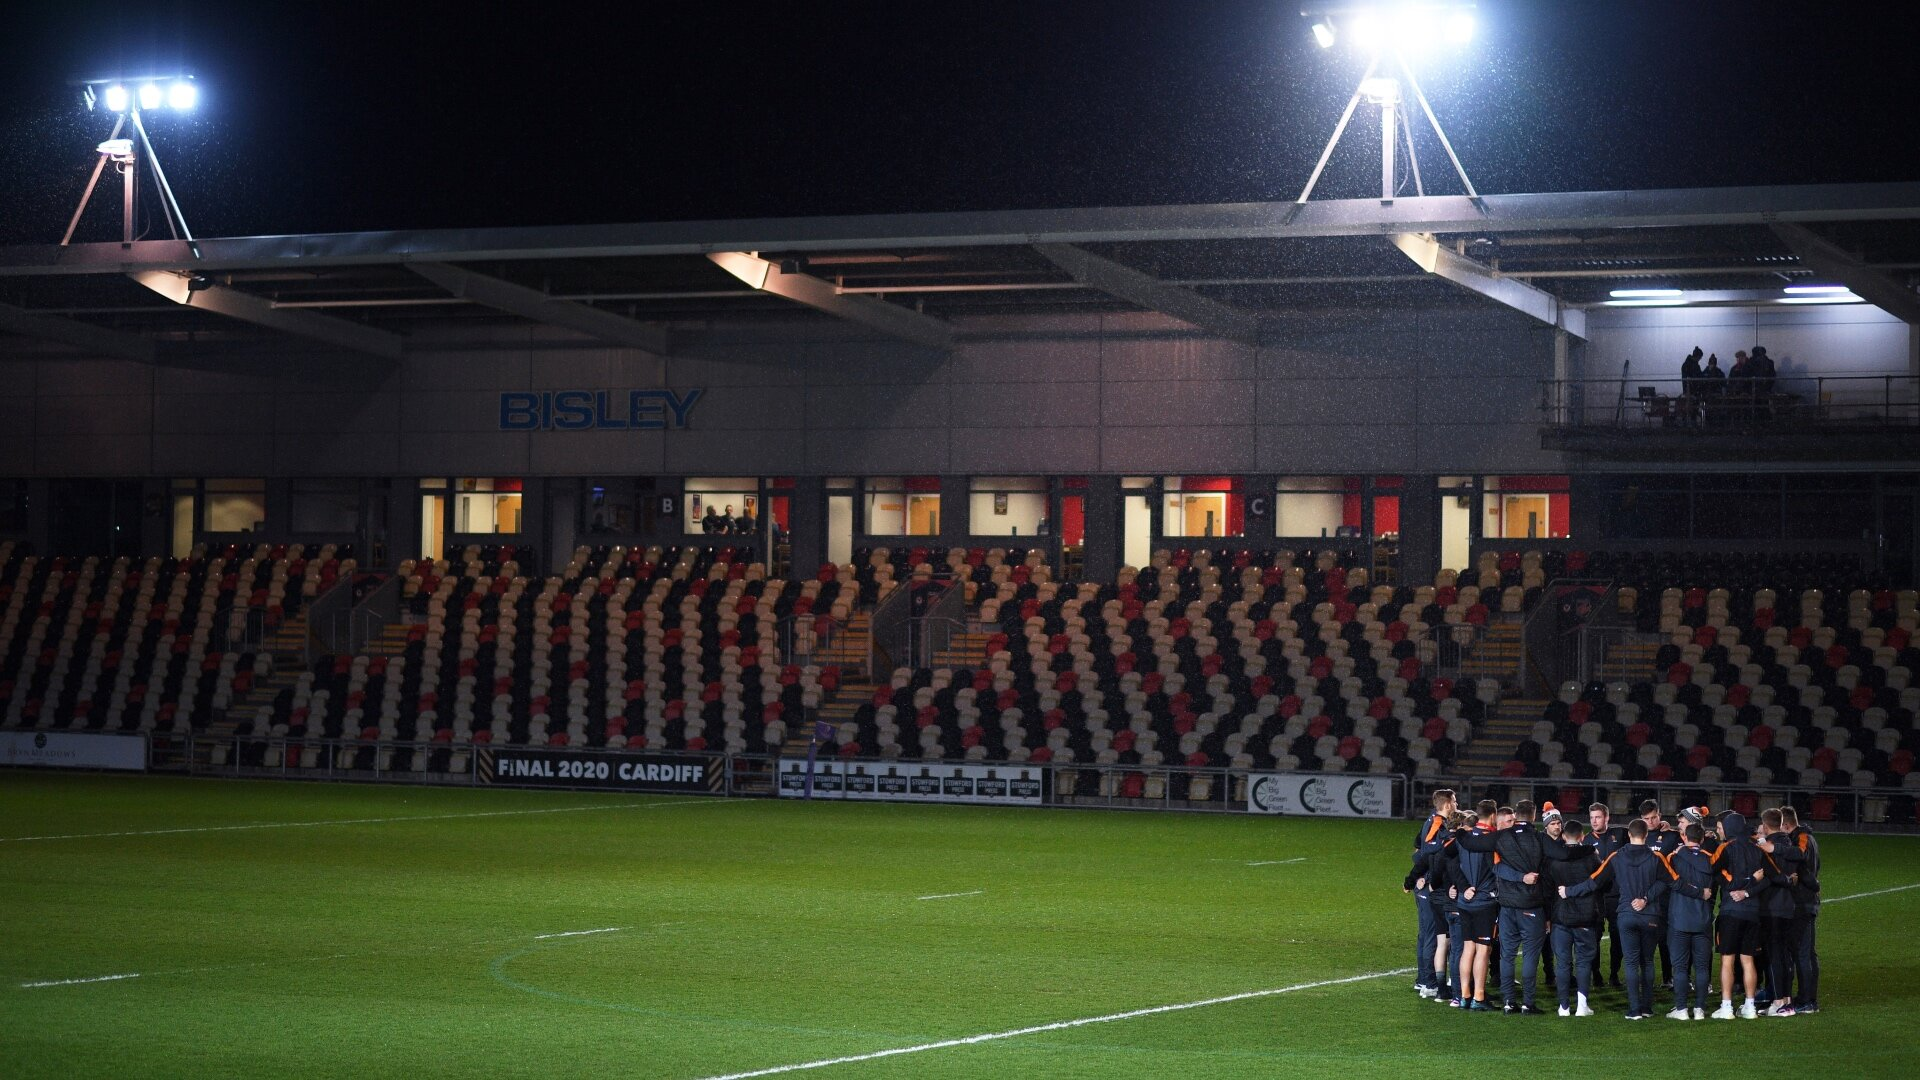 PRO14 confirm another Dragons match has been cancelled